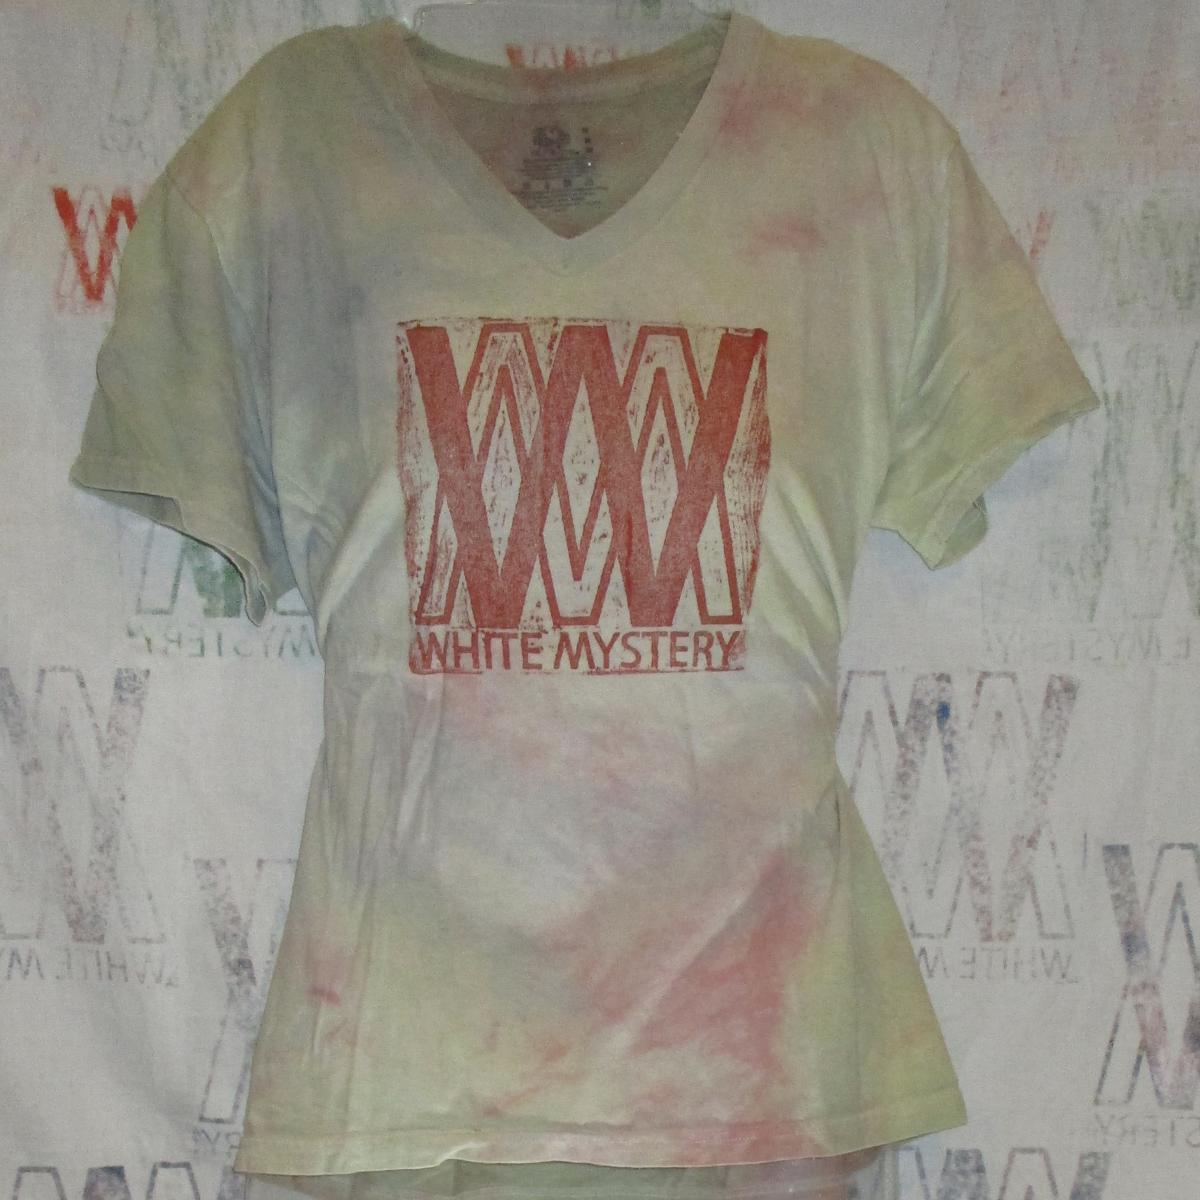 Red on Mood Ring Shirt, Date Unknown